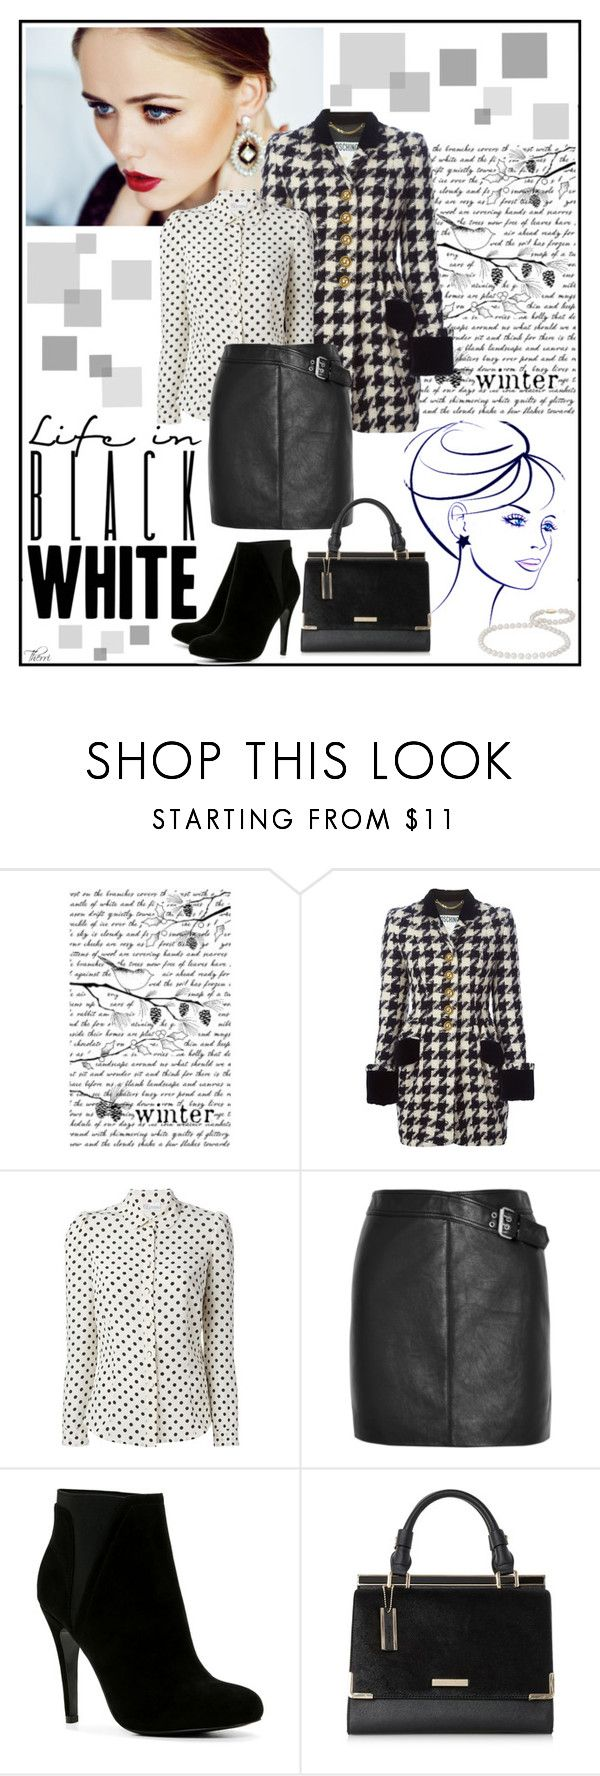 """""""classic in b&w"""" by paris-therri ❤ liked on Polyvore featuring Moschino, RED Valentino, Yves Saint Laurent, ALDO and Blue Nile"""